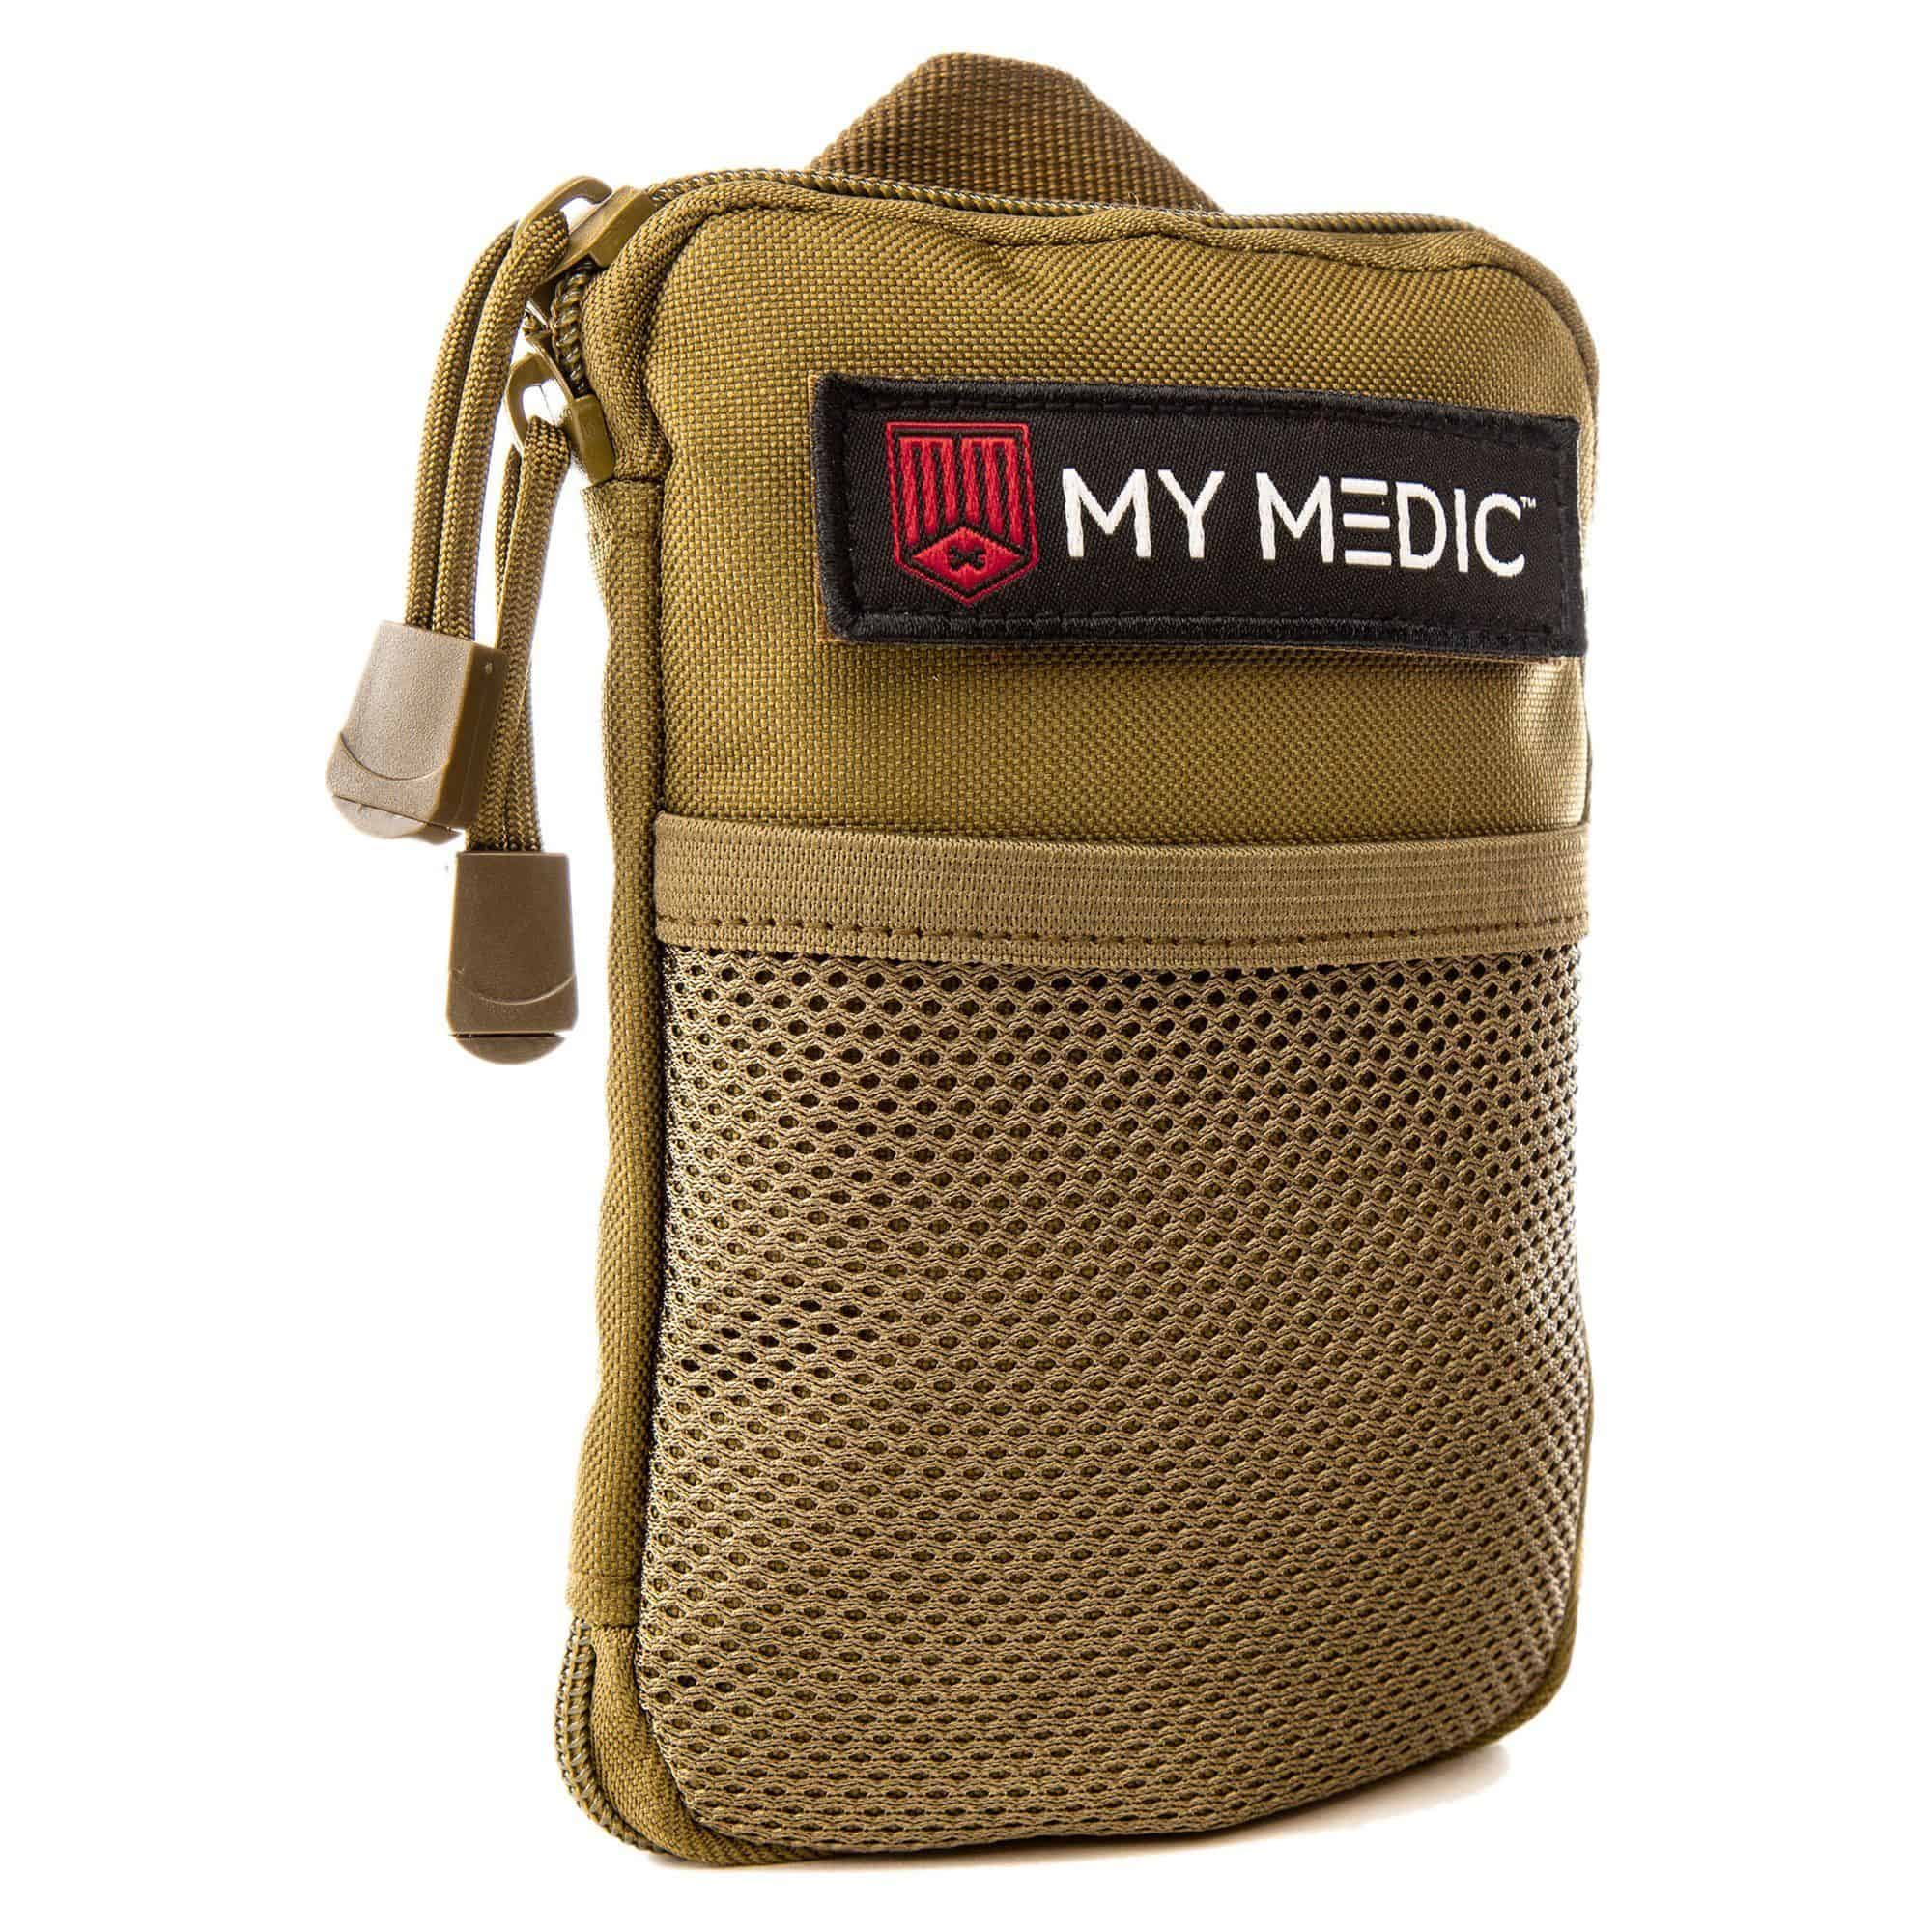 MyMedic Solo First Aid Kit - Color Coyote